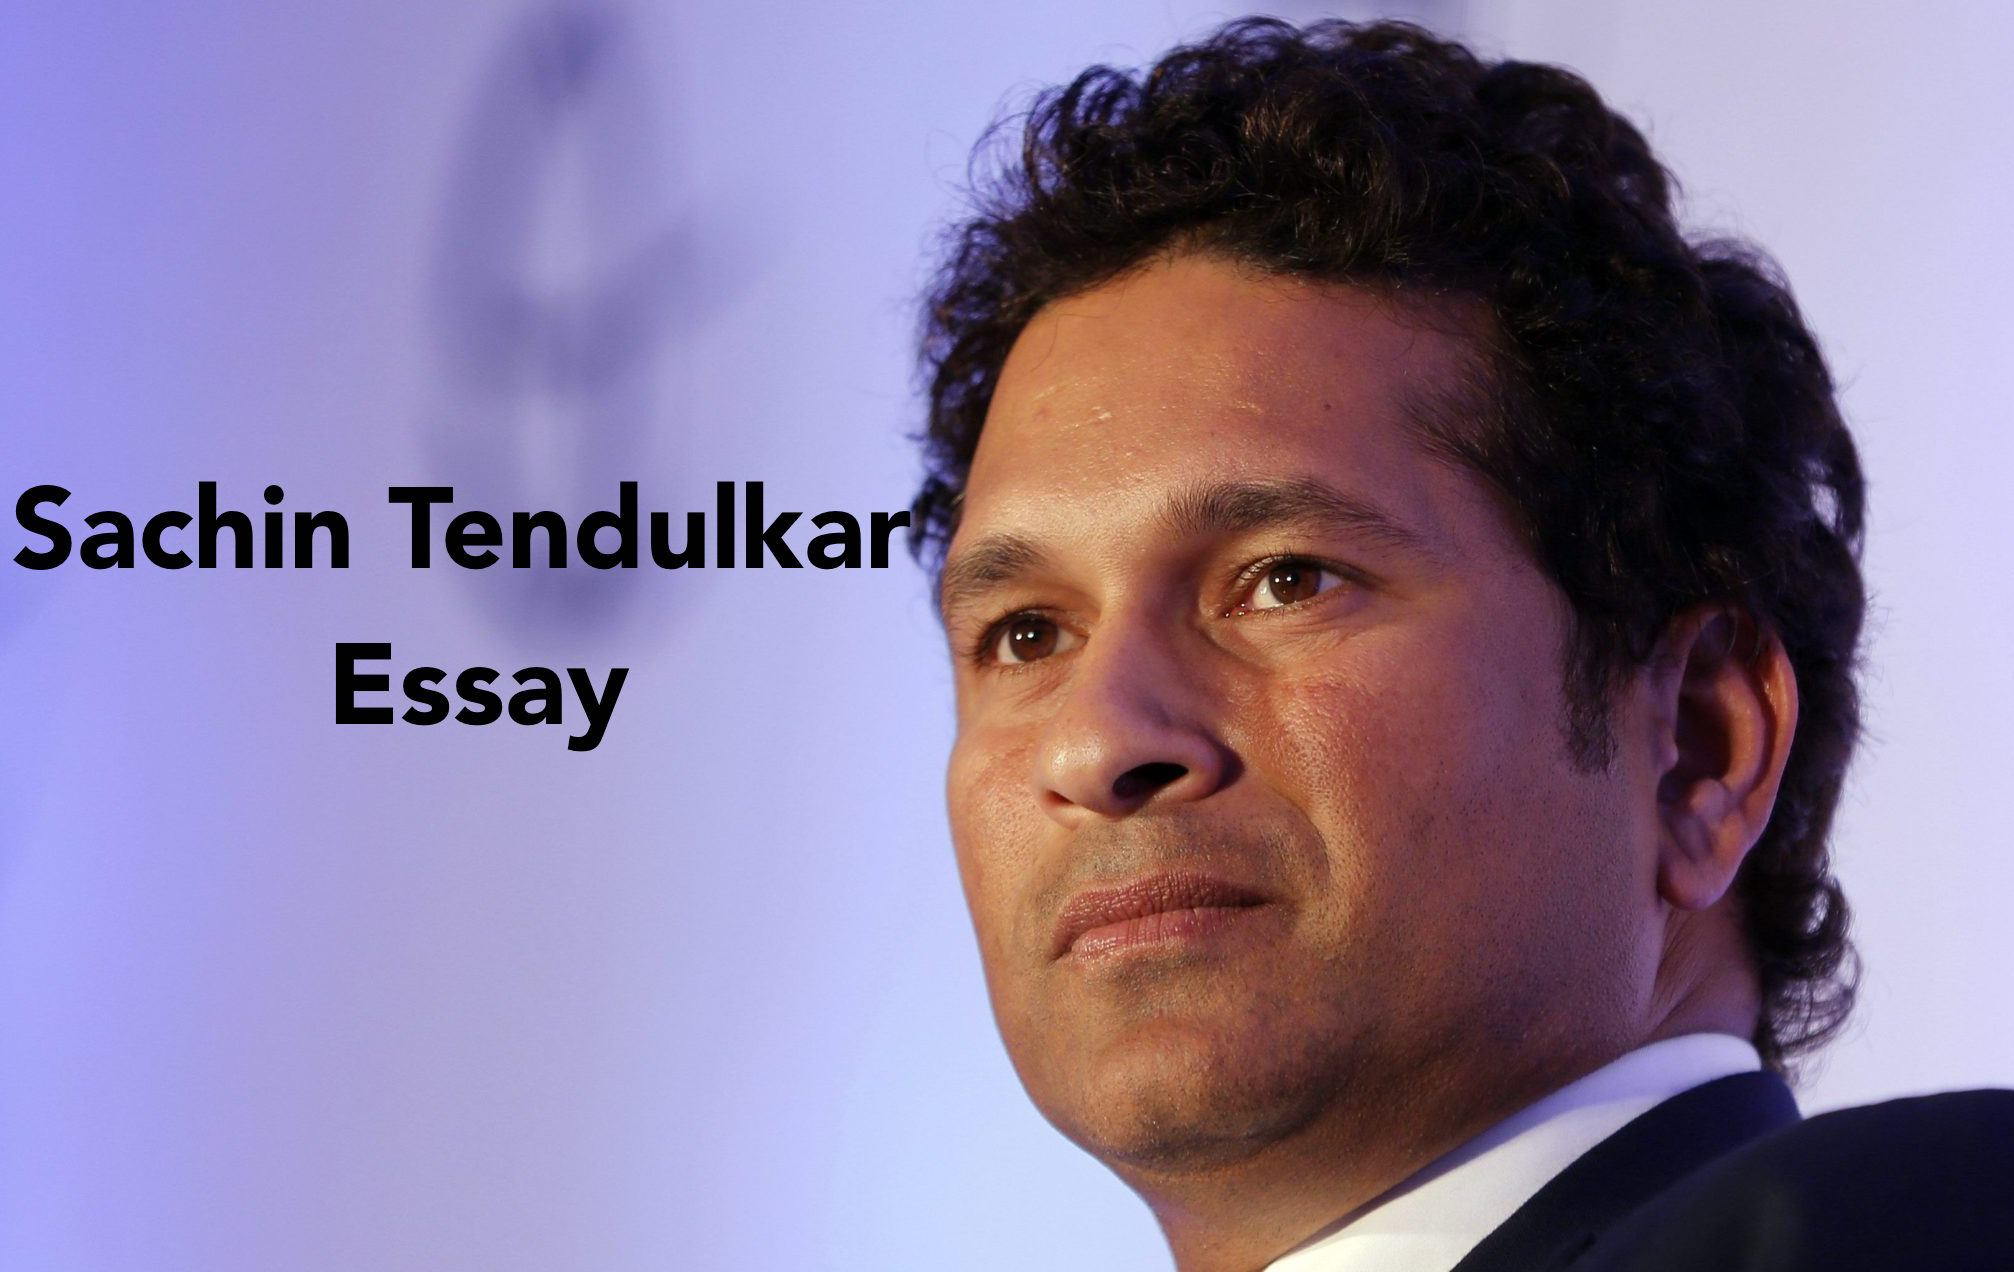 Sachin Tendulkar Essay In English For Student  Children  Essay Vs Paper also English Literature Essay Structure  Synthesis Essay Tips